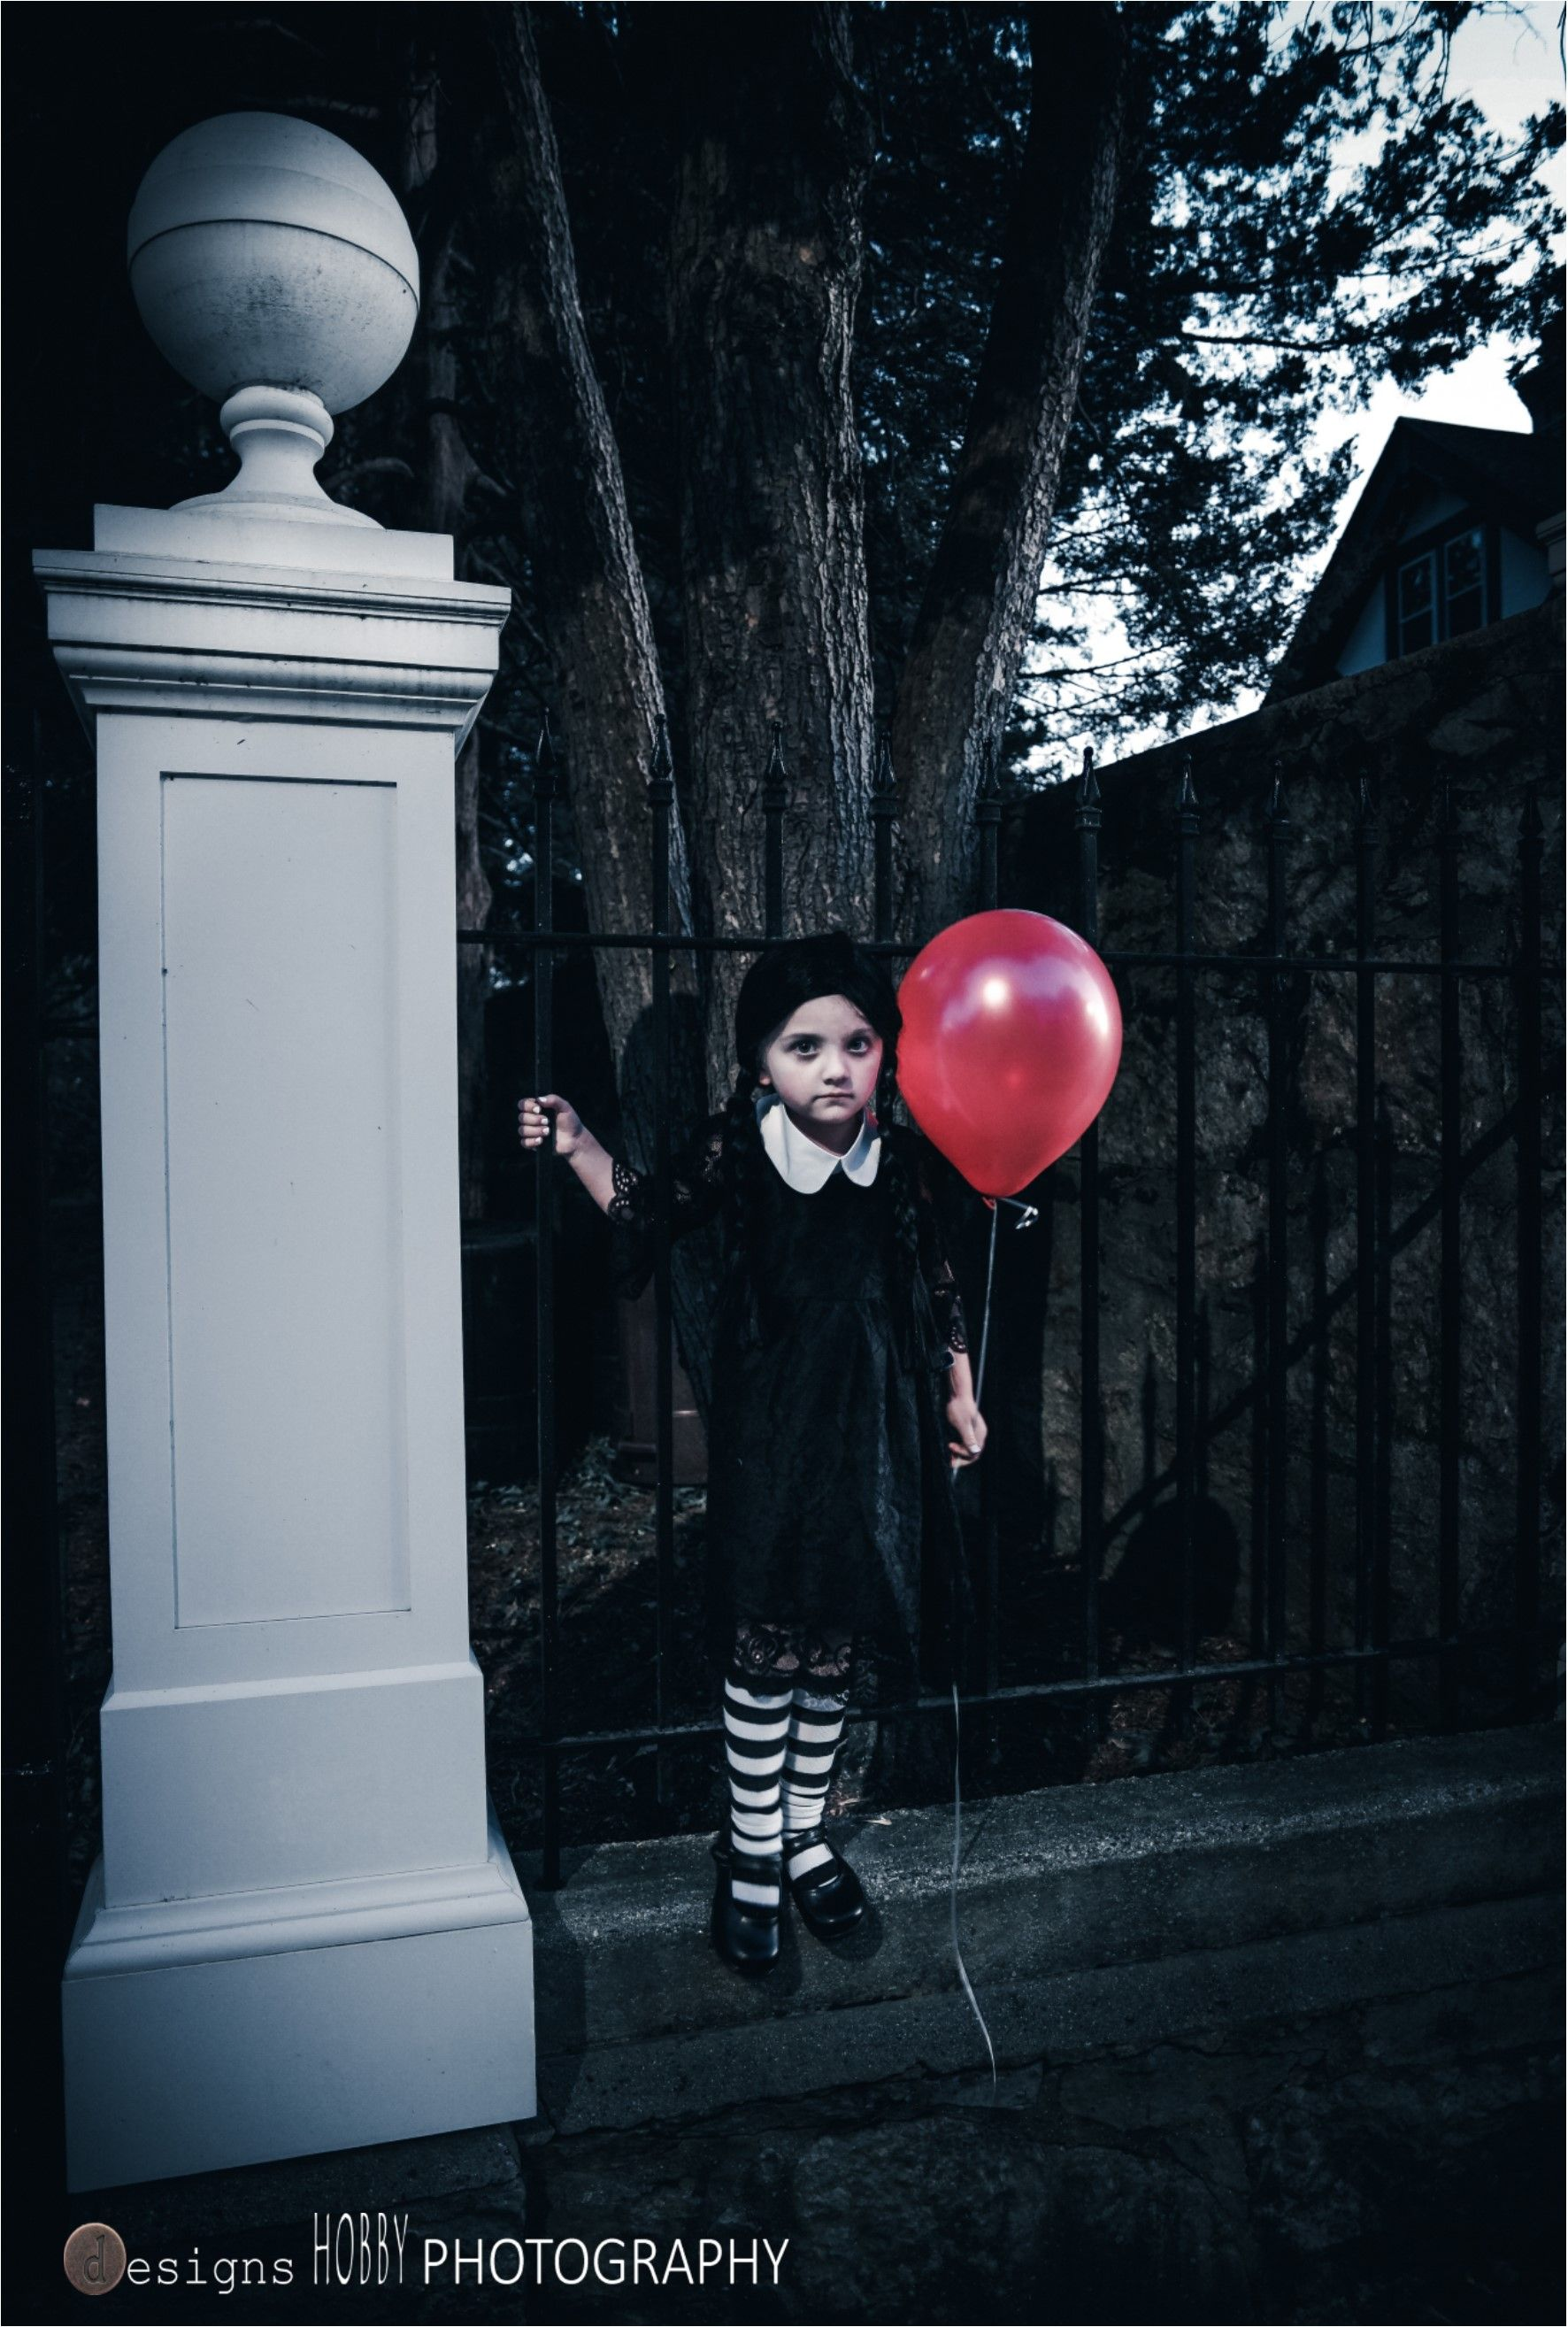 Wednesday Addams photo shoot Halloween Costume in 2020